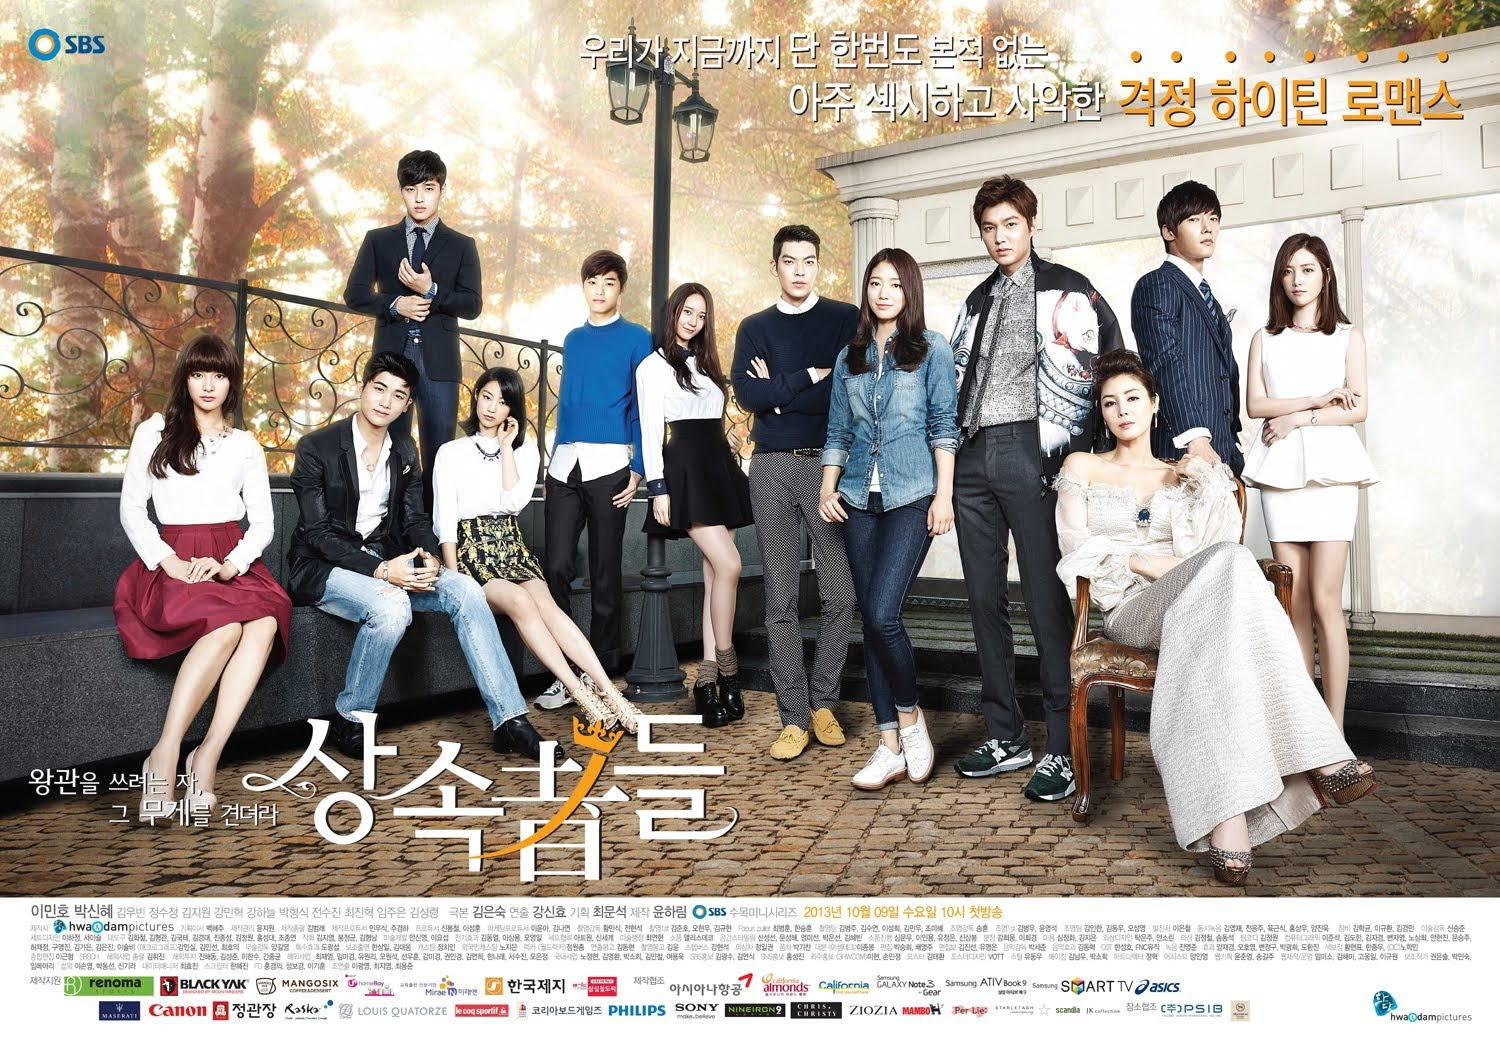 http://images3.wikia.nocookie.net/__cb20131004192713/drama/es/images/8/80/The_Heirs.jpg